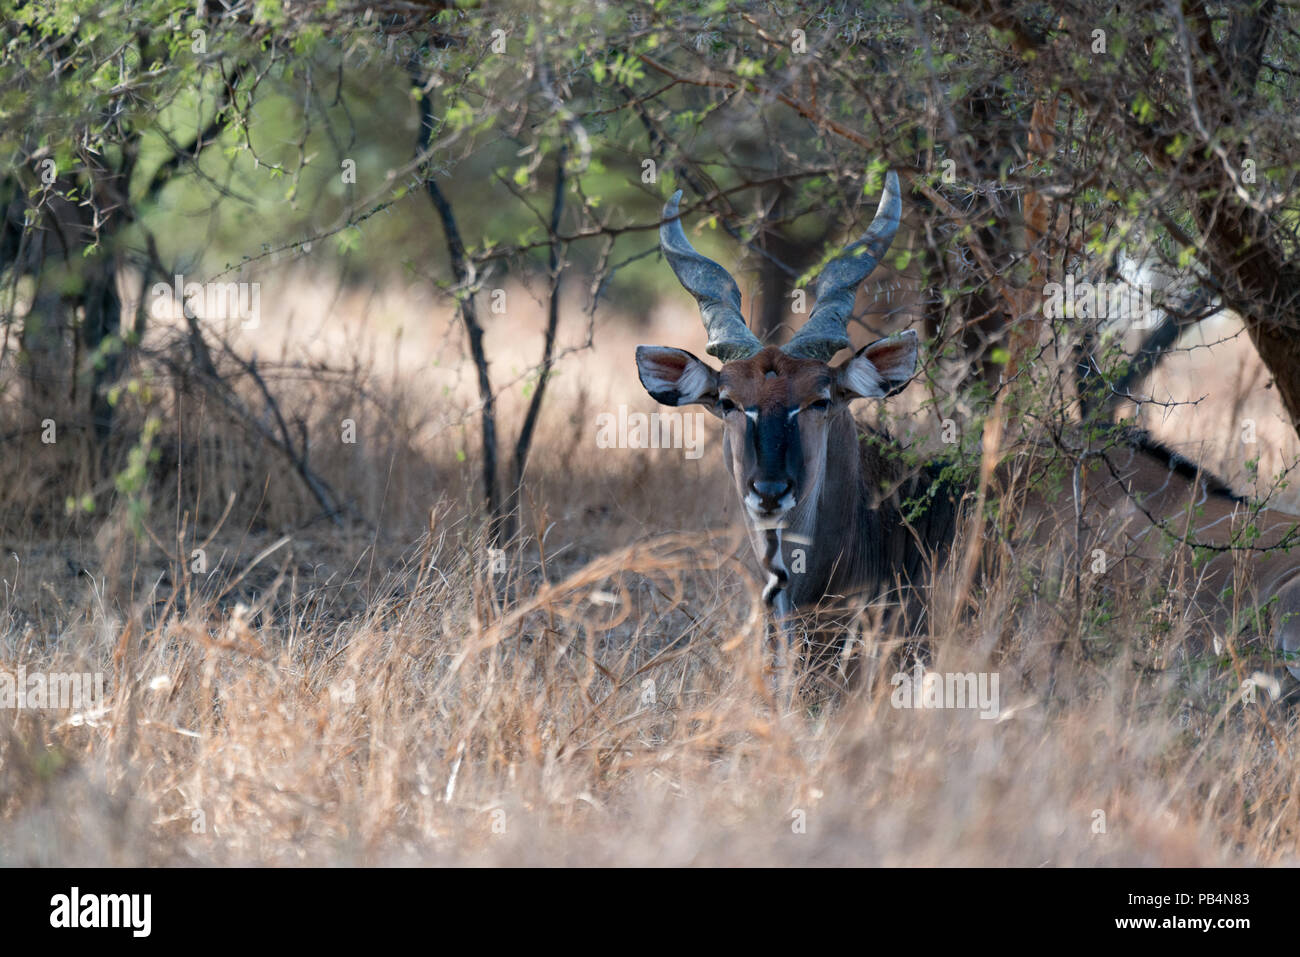 A derby eland at Bandia Reserve, Senegal - Stock Image